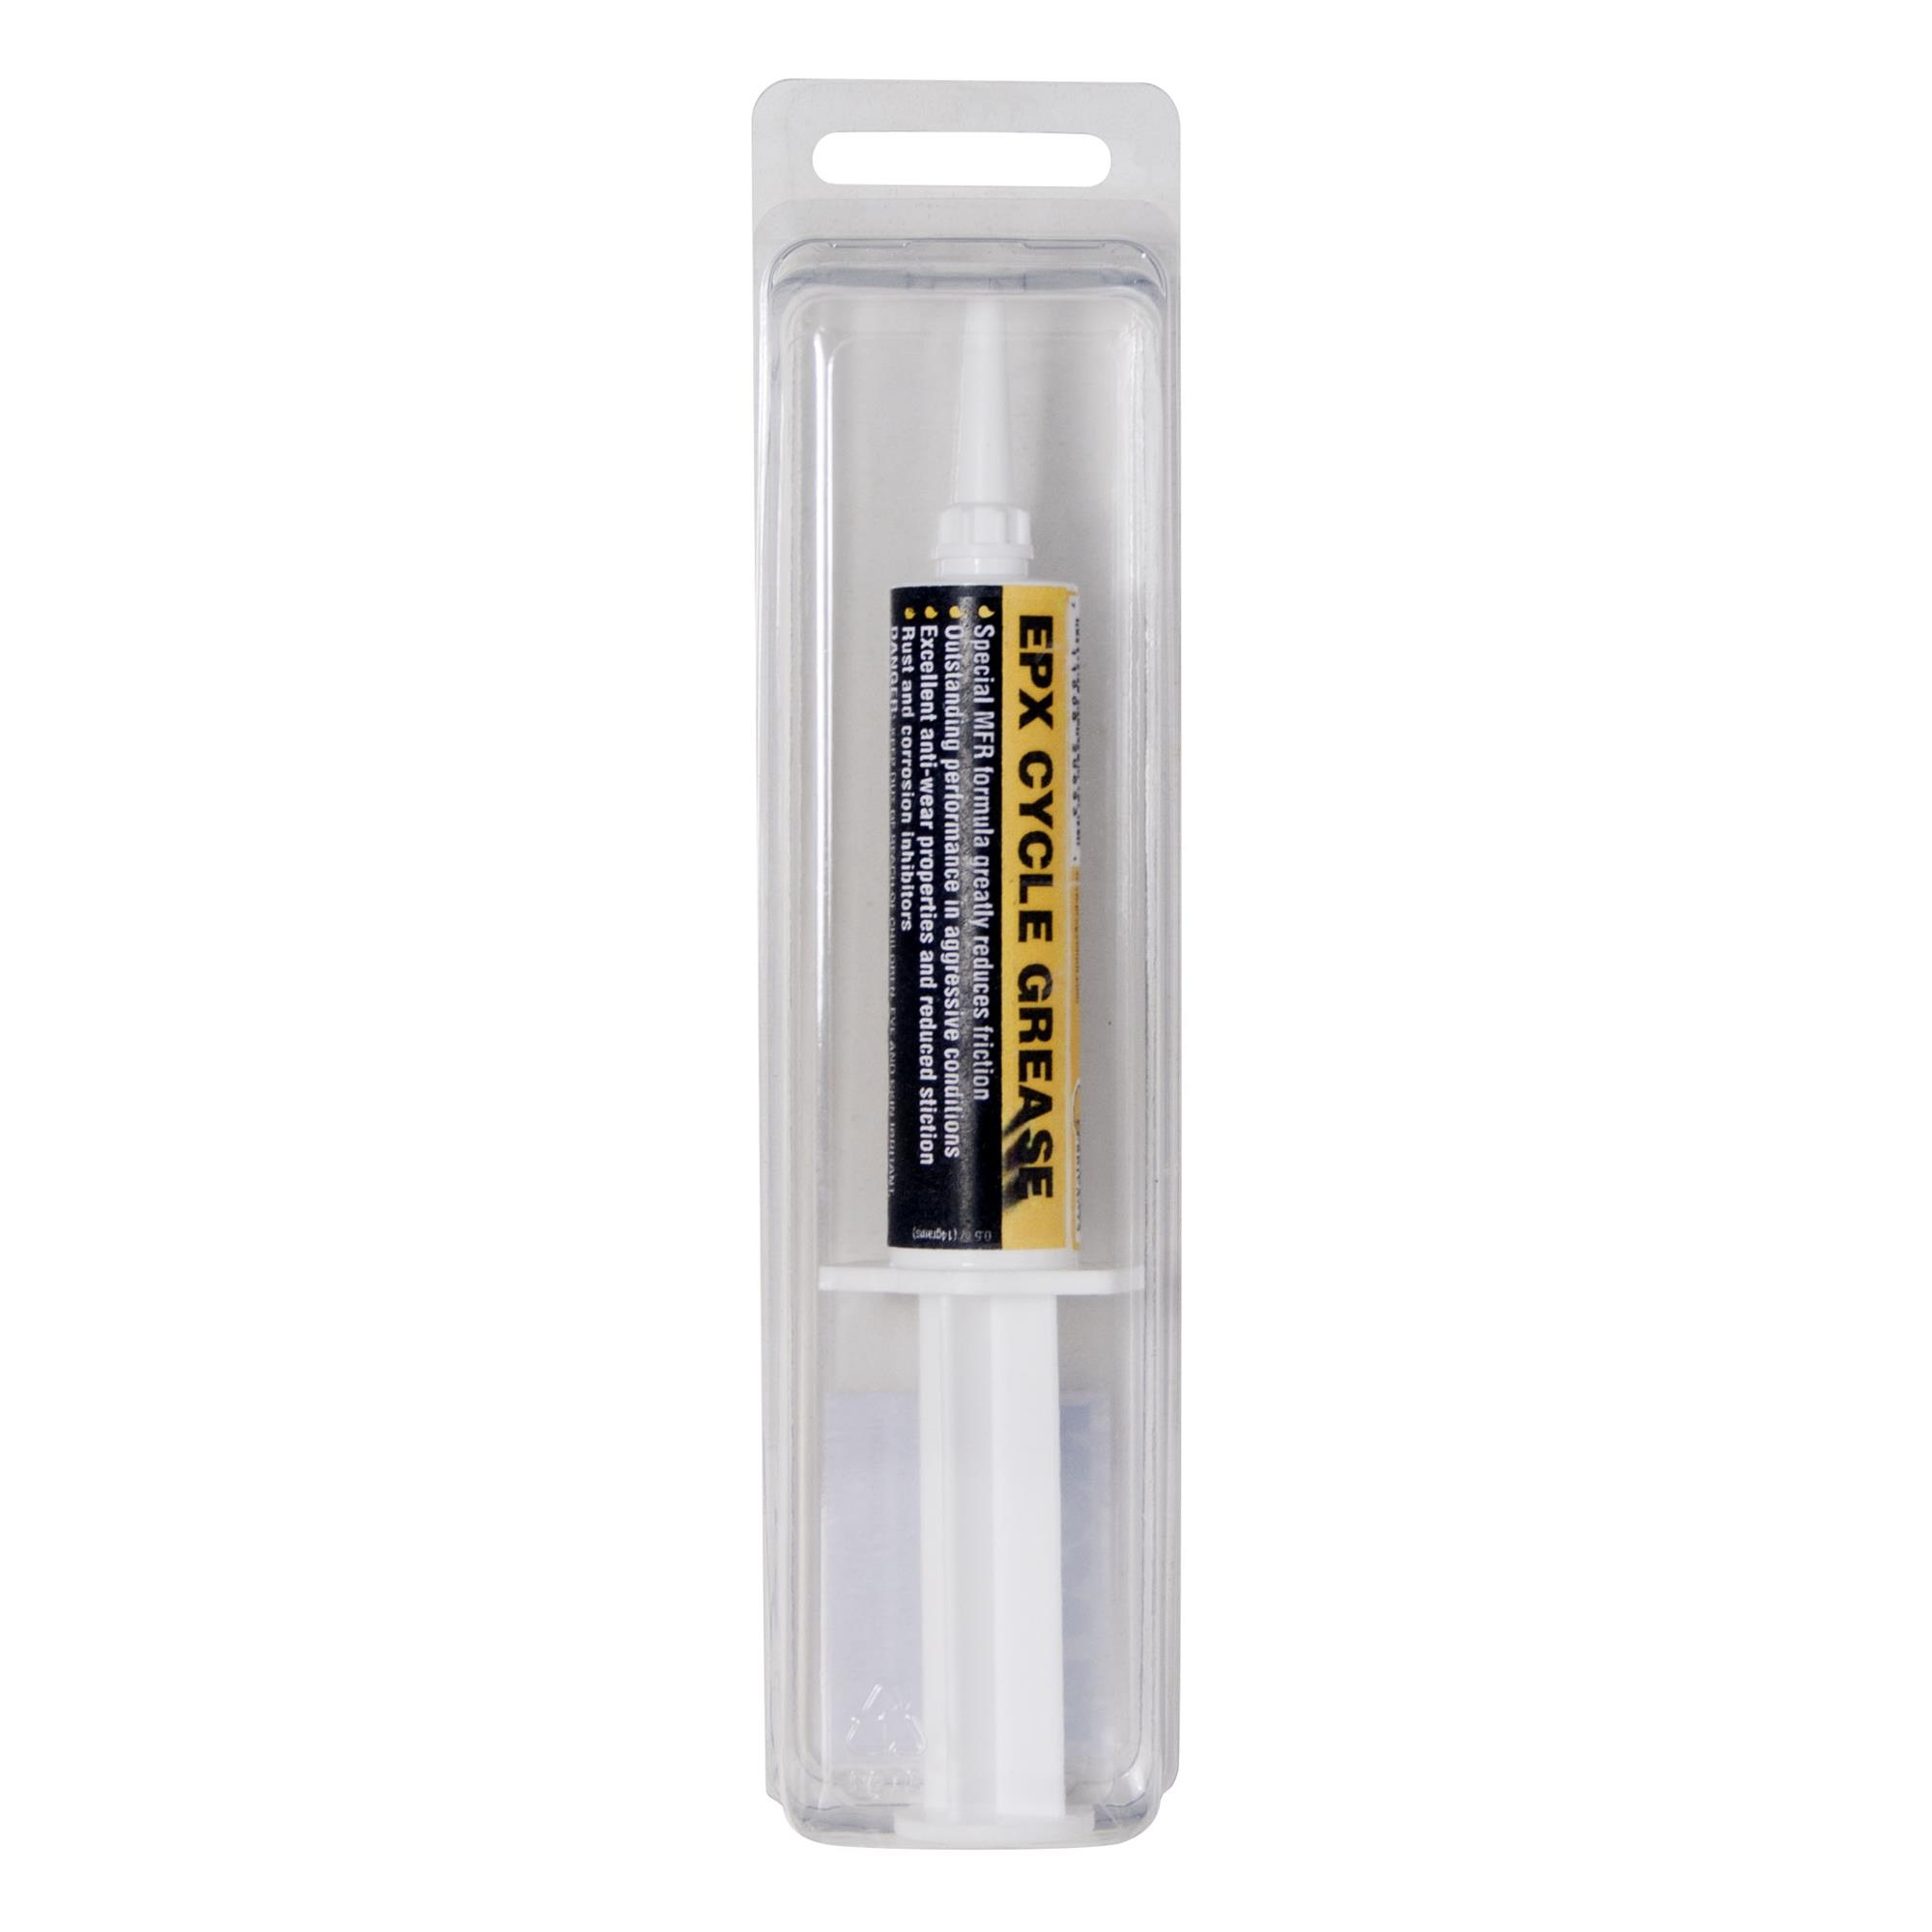 EPX CYCLE GREASE 14g